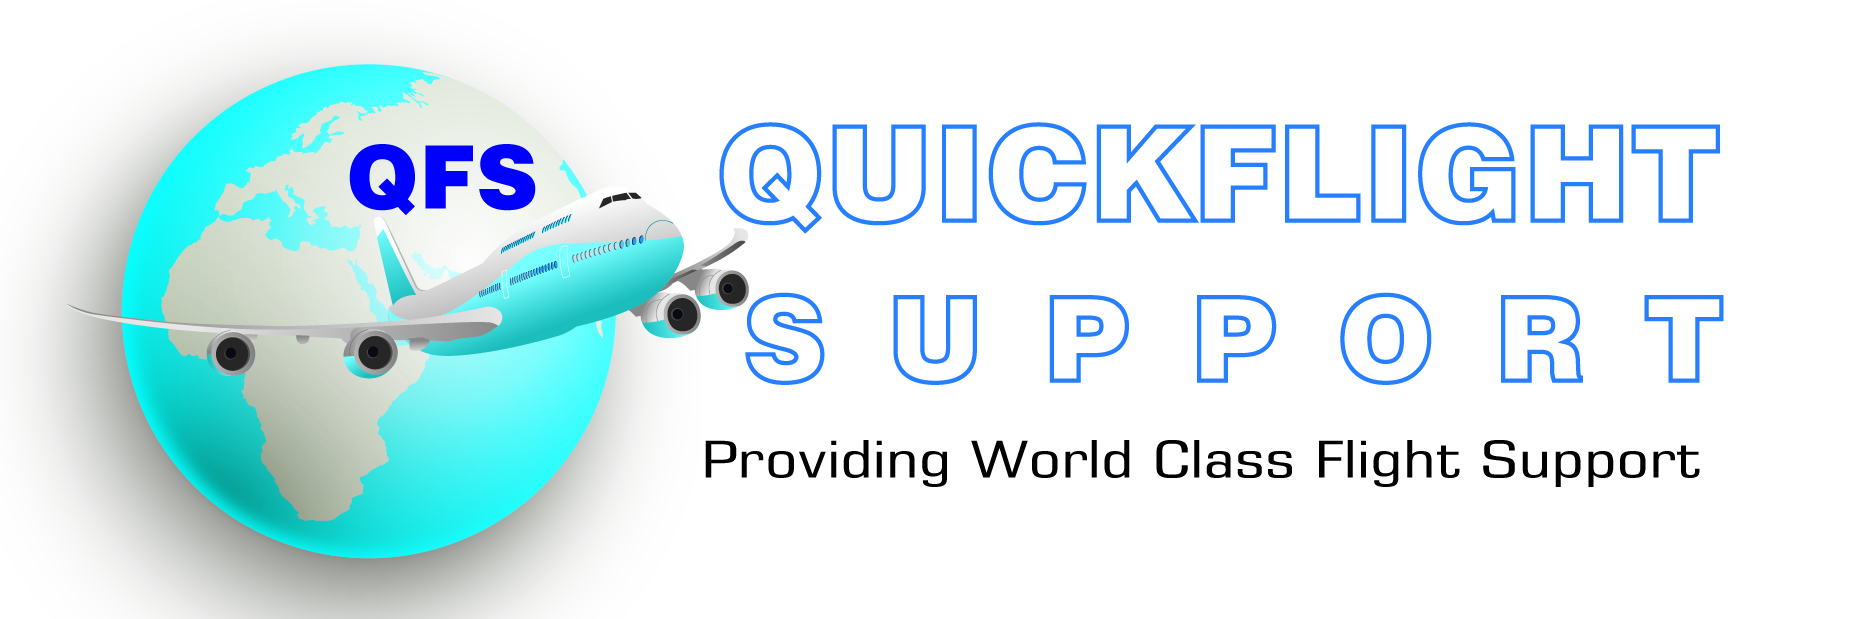 Quick Flight Support Limited logo